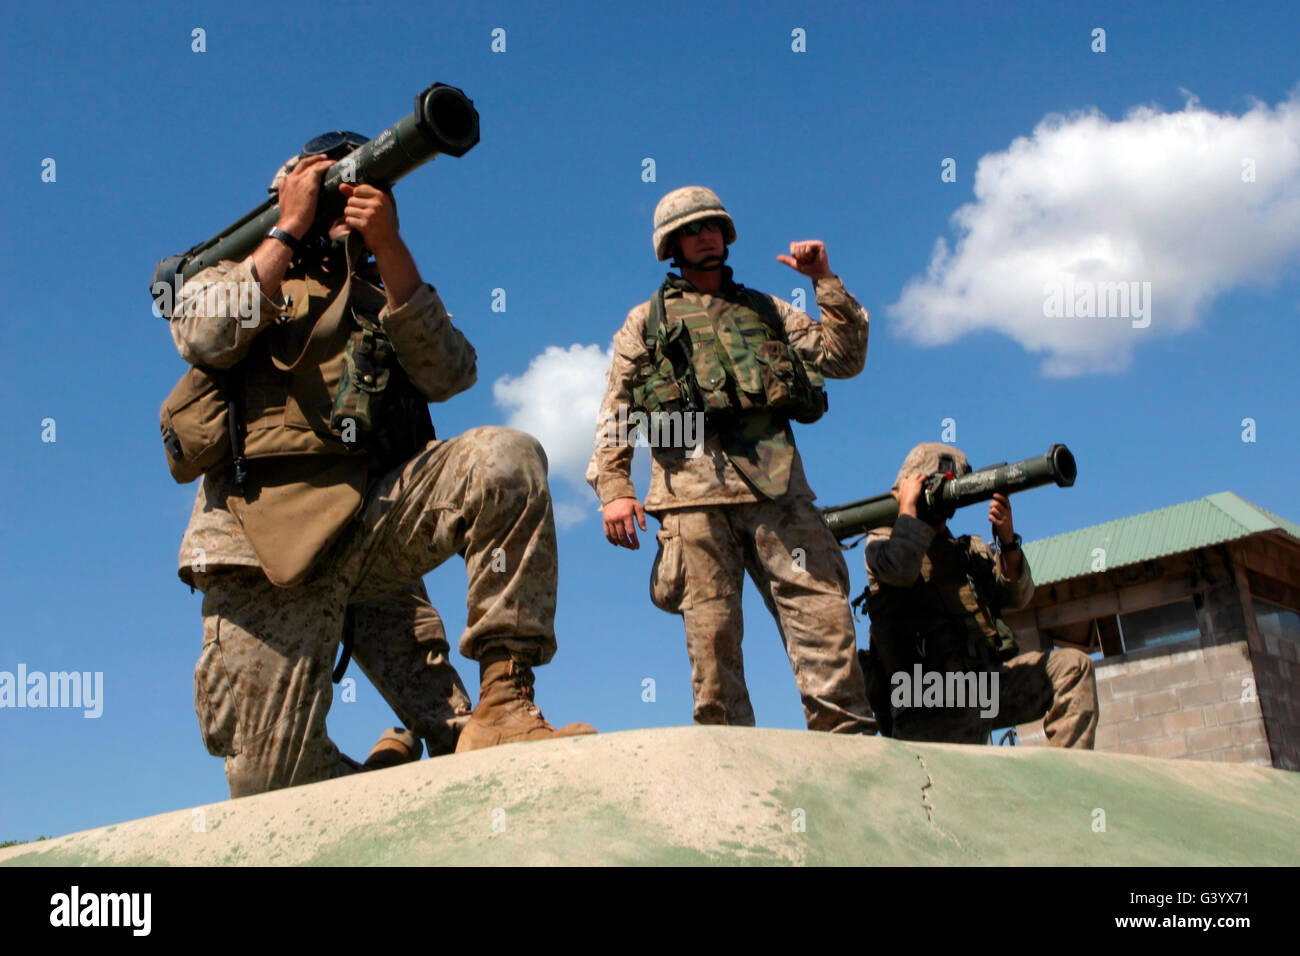 Marines are instructed on the operation of an Anti-Tank-4 rocket system. - Stock Image